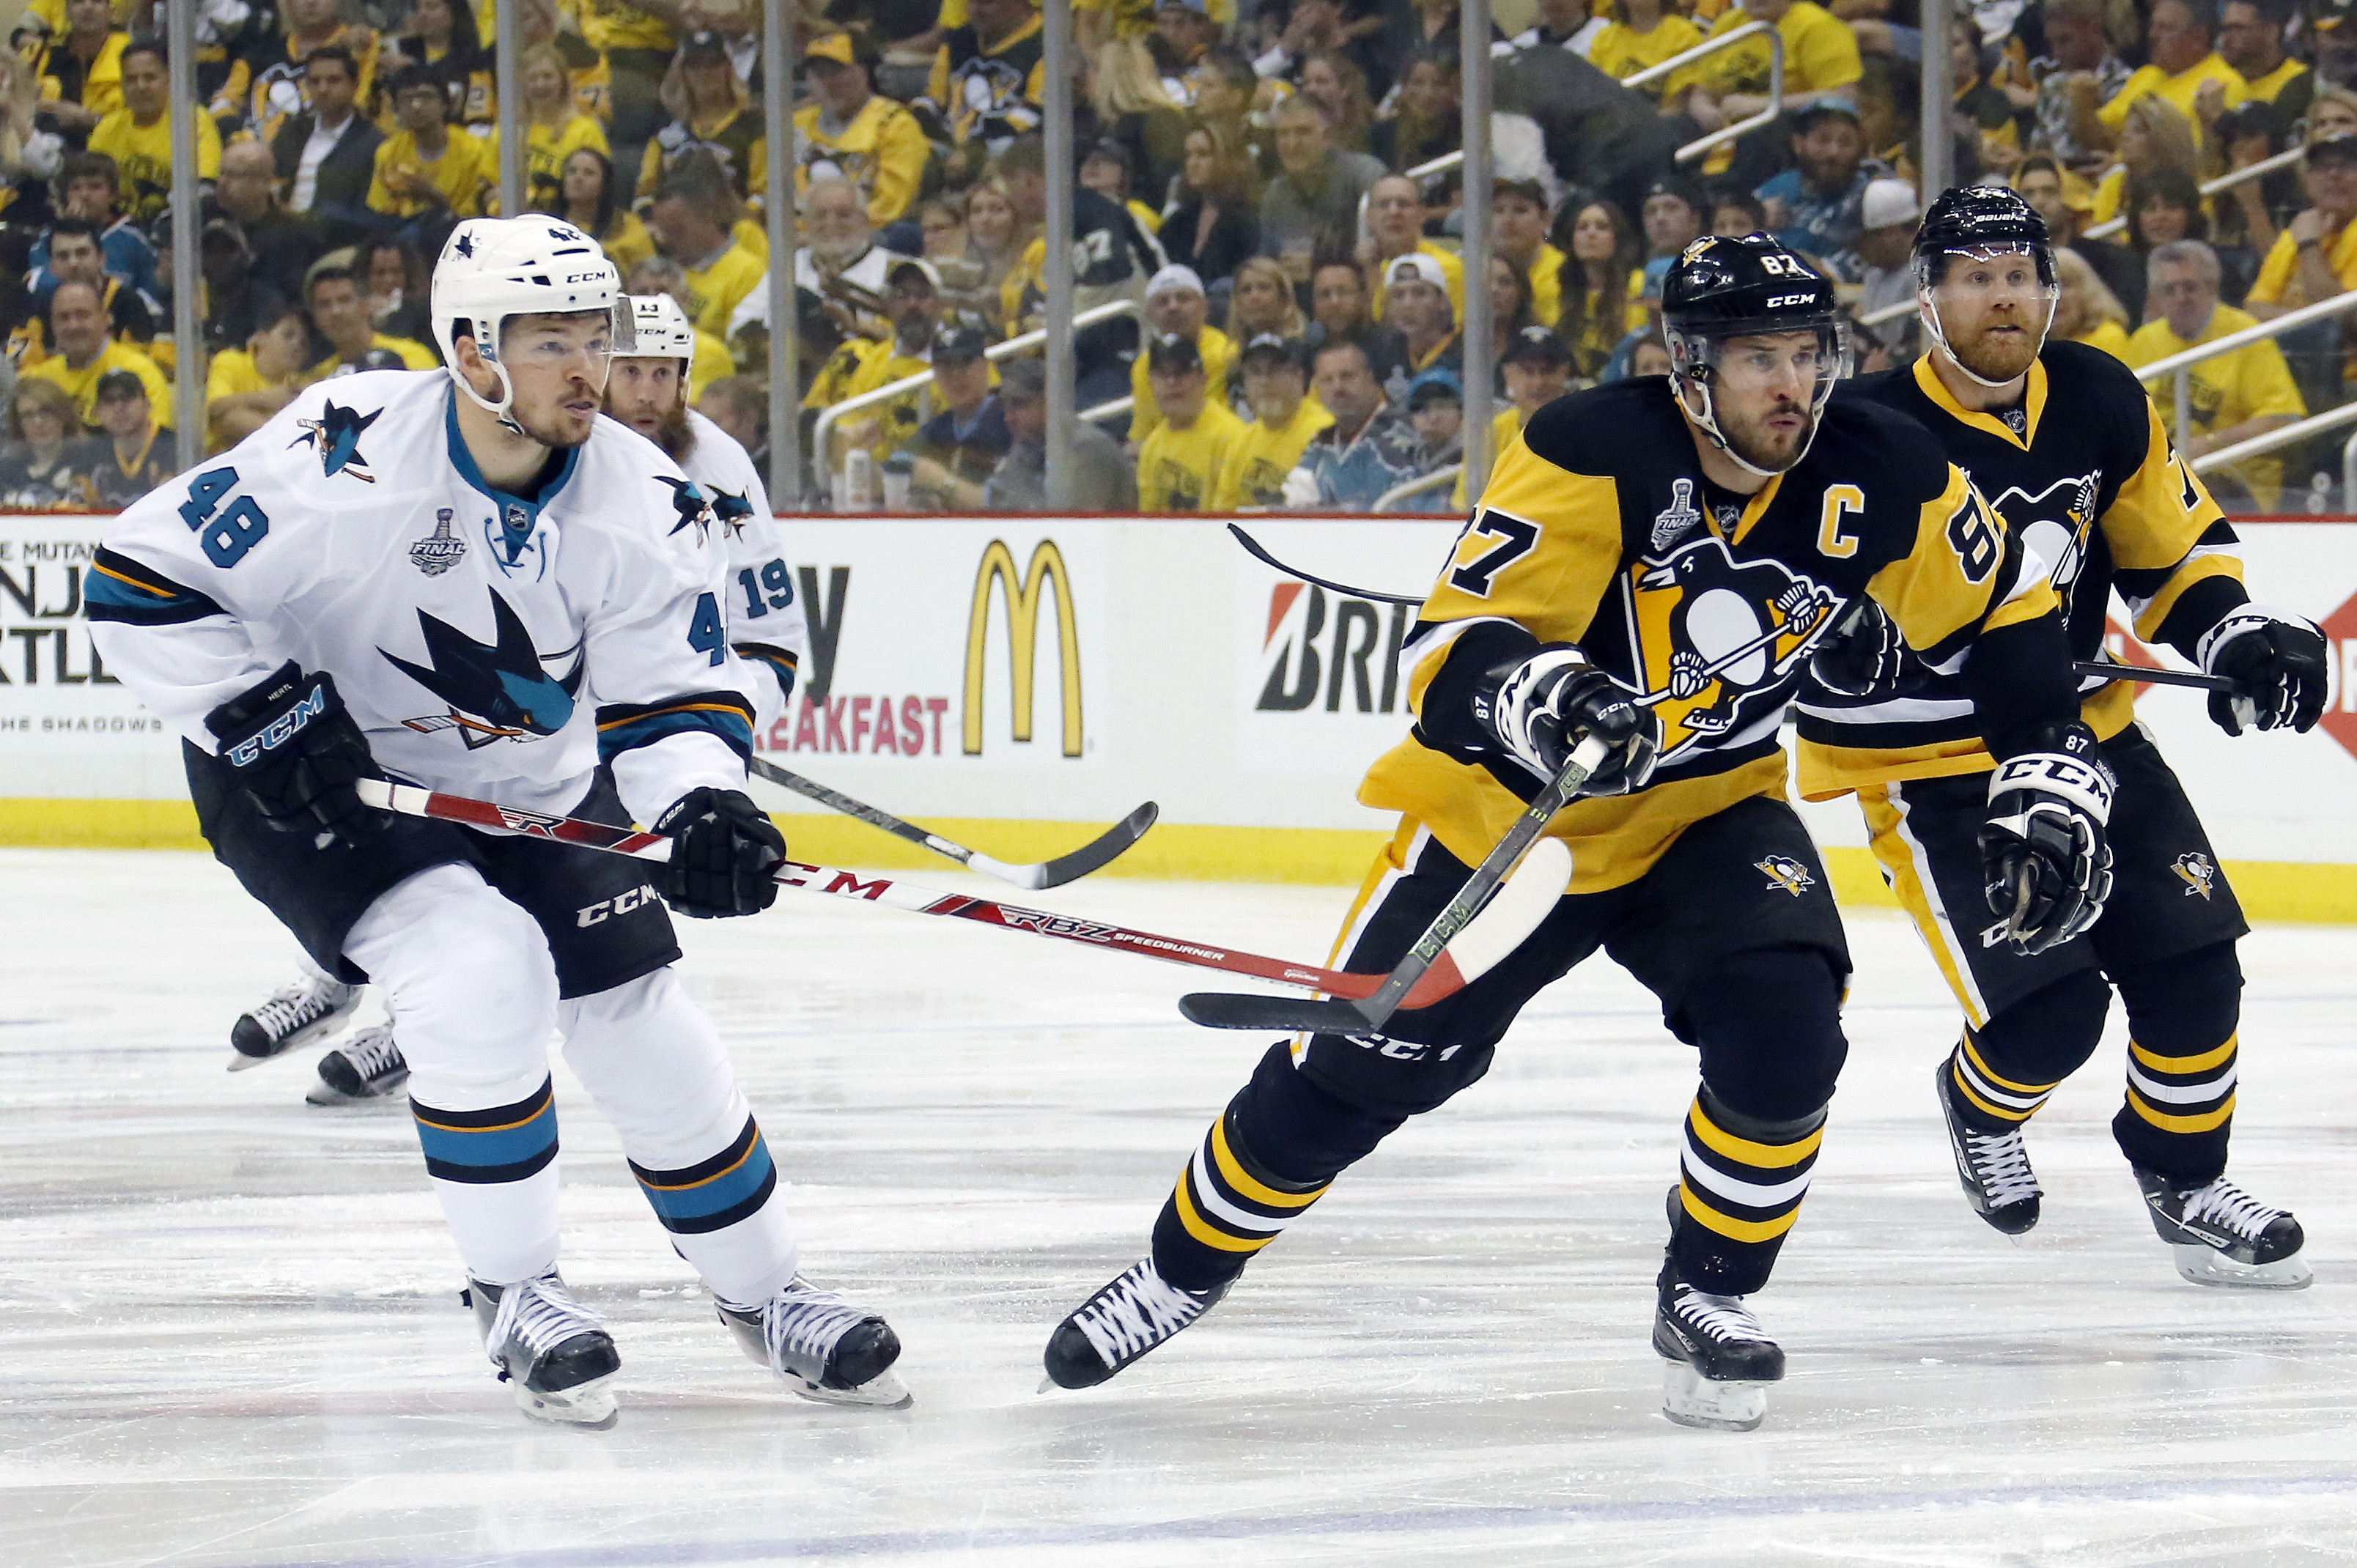 Pittsburgh Penguins' Sidney Crosby (87) skates past San Jose Sharks' Tomas Hertl (48) during the first period in Game 2 of the NHL hockey Stanley Cup Finals on Wednesday, June 1, 2016, in Pittsburgh. (AP Photo/Keith Srakocic)